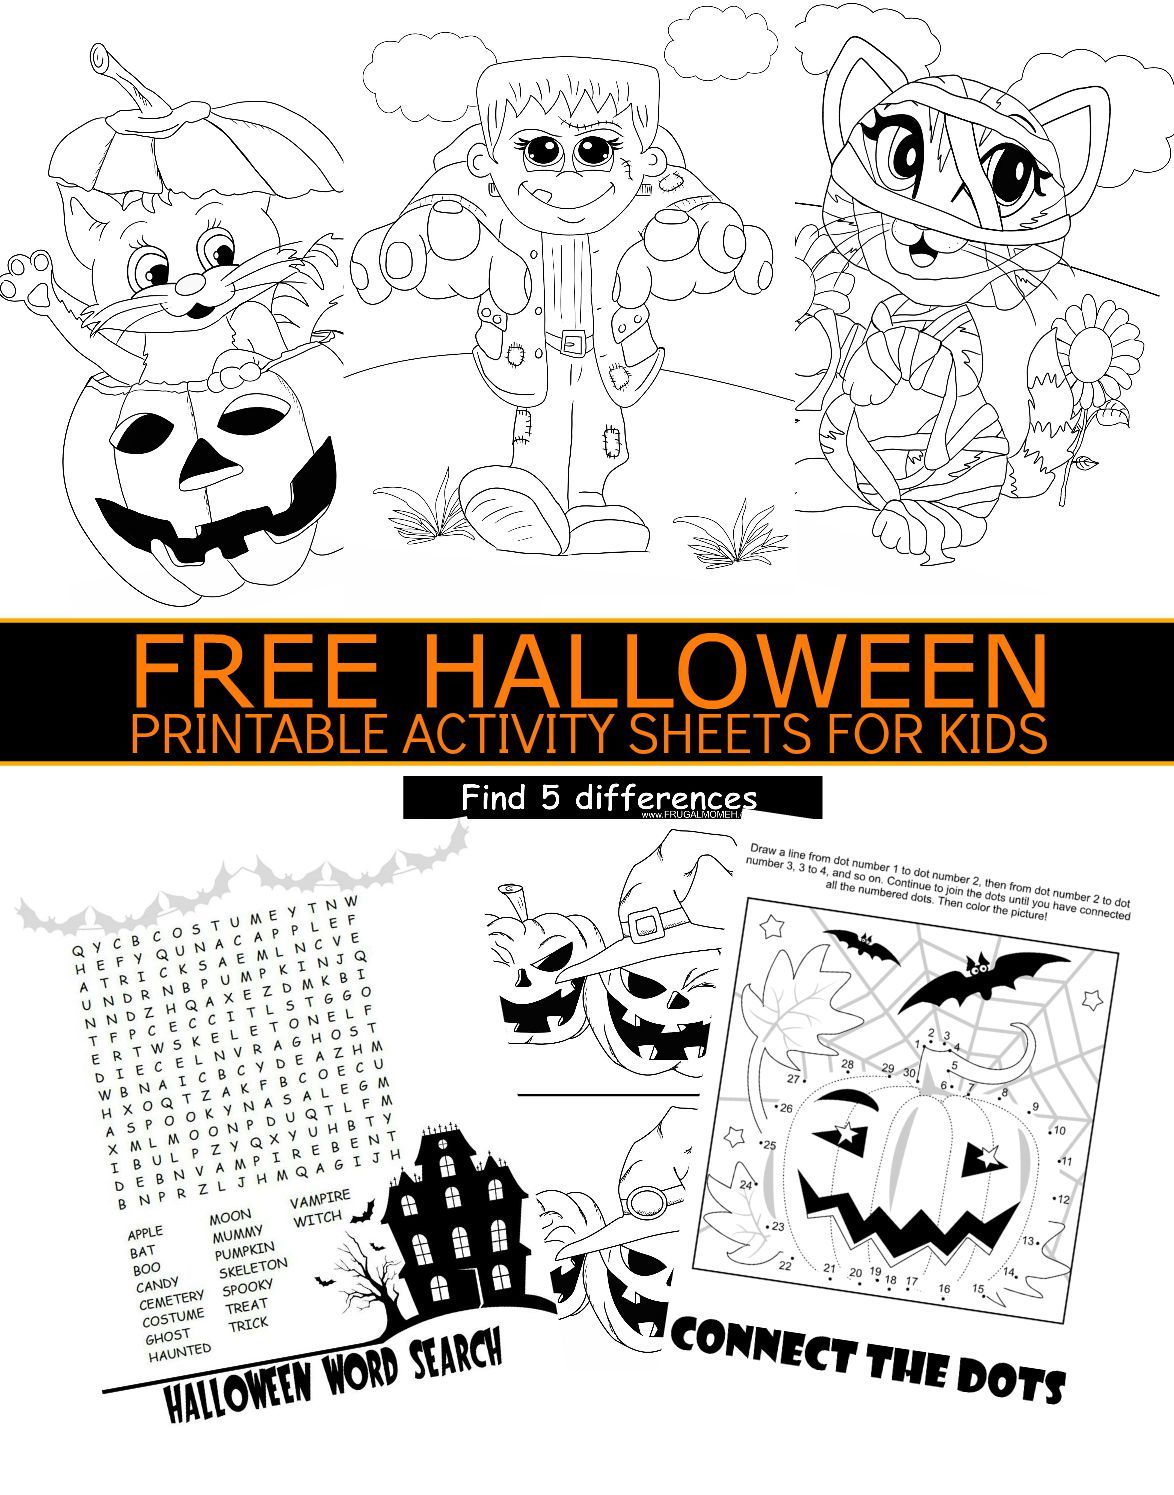 Free Printable Childrens Activity Sheets